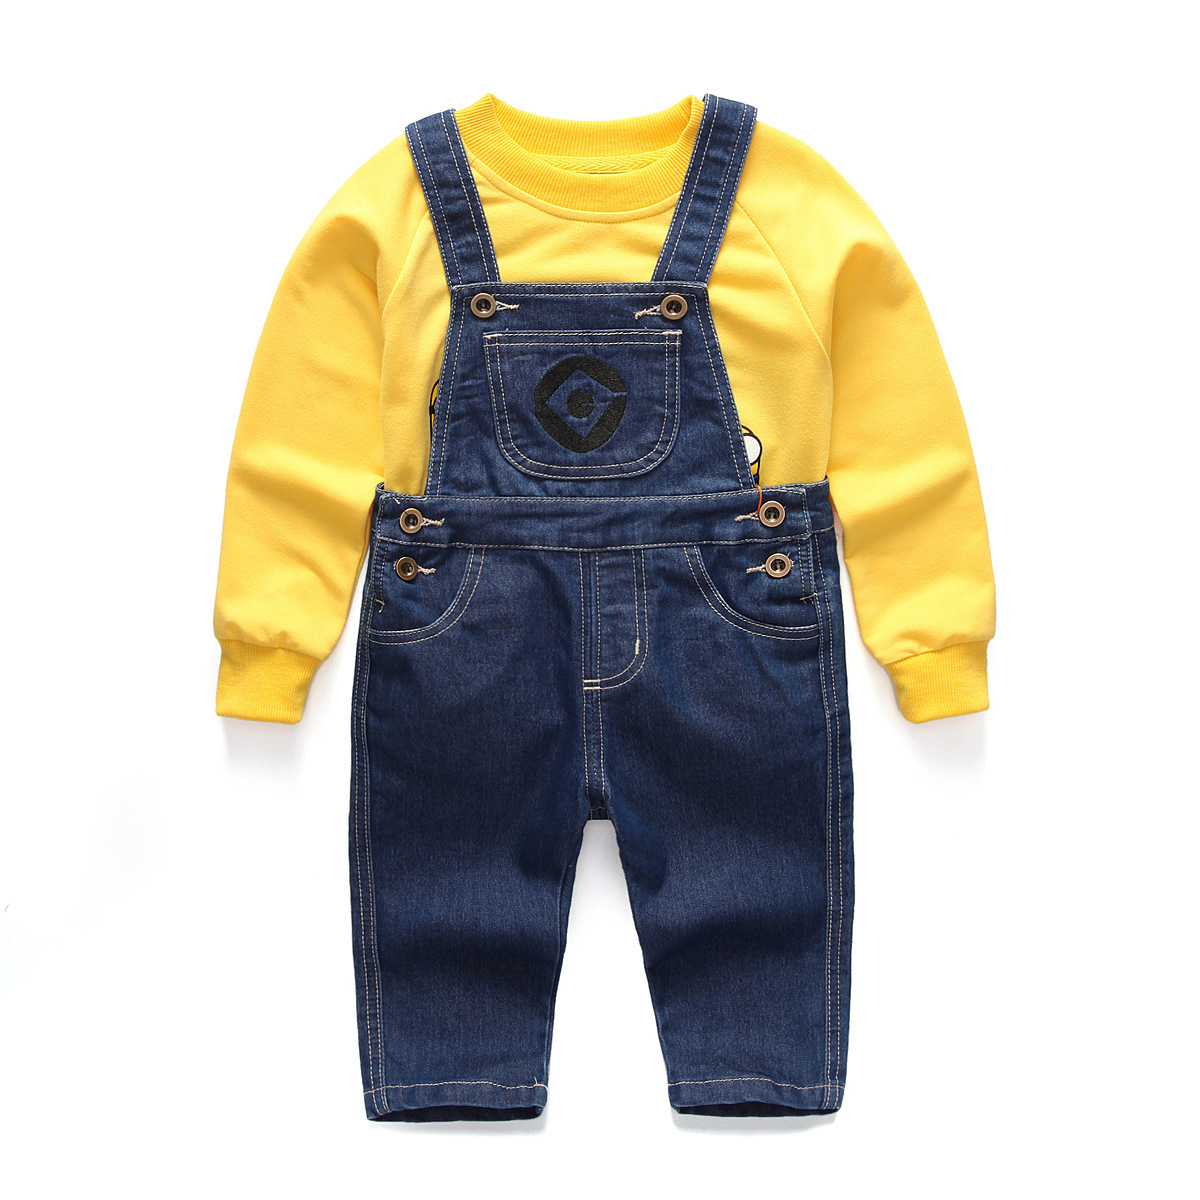 2018 Autumn Winter Kids Clothes Sets For Boys Girls Minions Pattern Long Sleeve T Shirts + Overalls Jeans 2 Pcs Children Baby 2017 summer girls sets clothes short sleeve chiffon baby girls sets for kids big girls t shirts and stripe shorts children suits